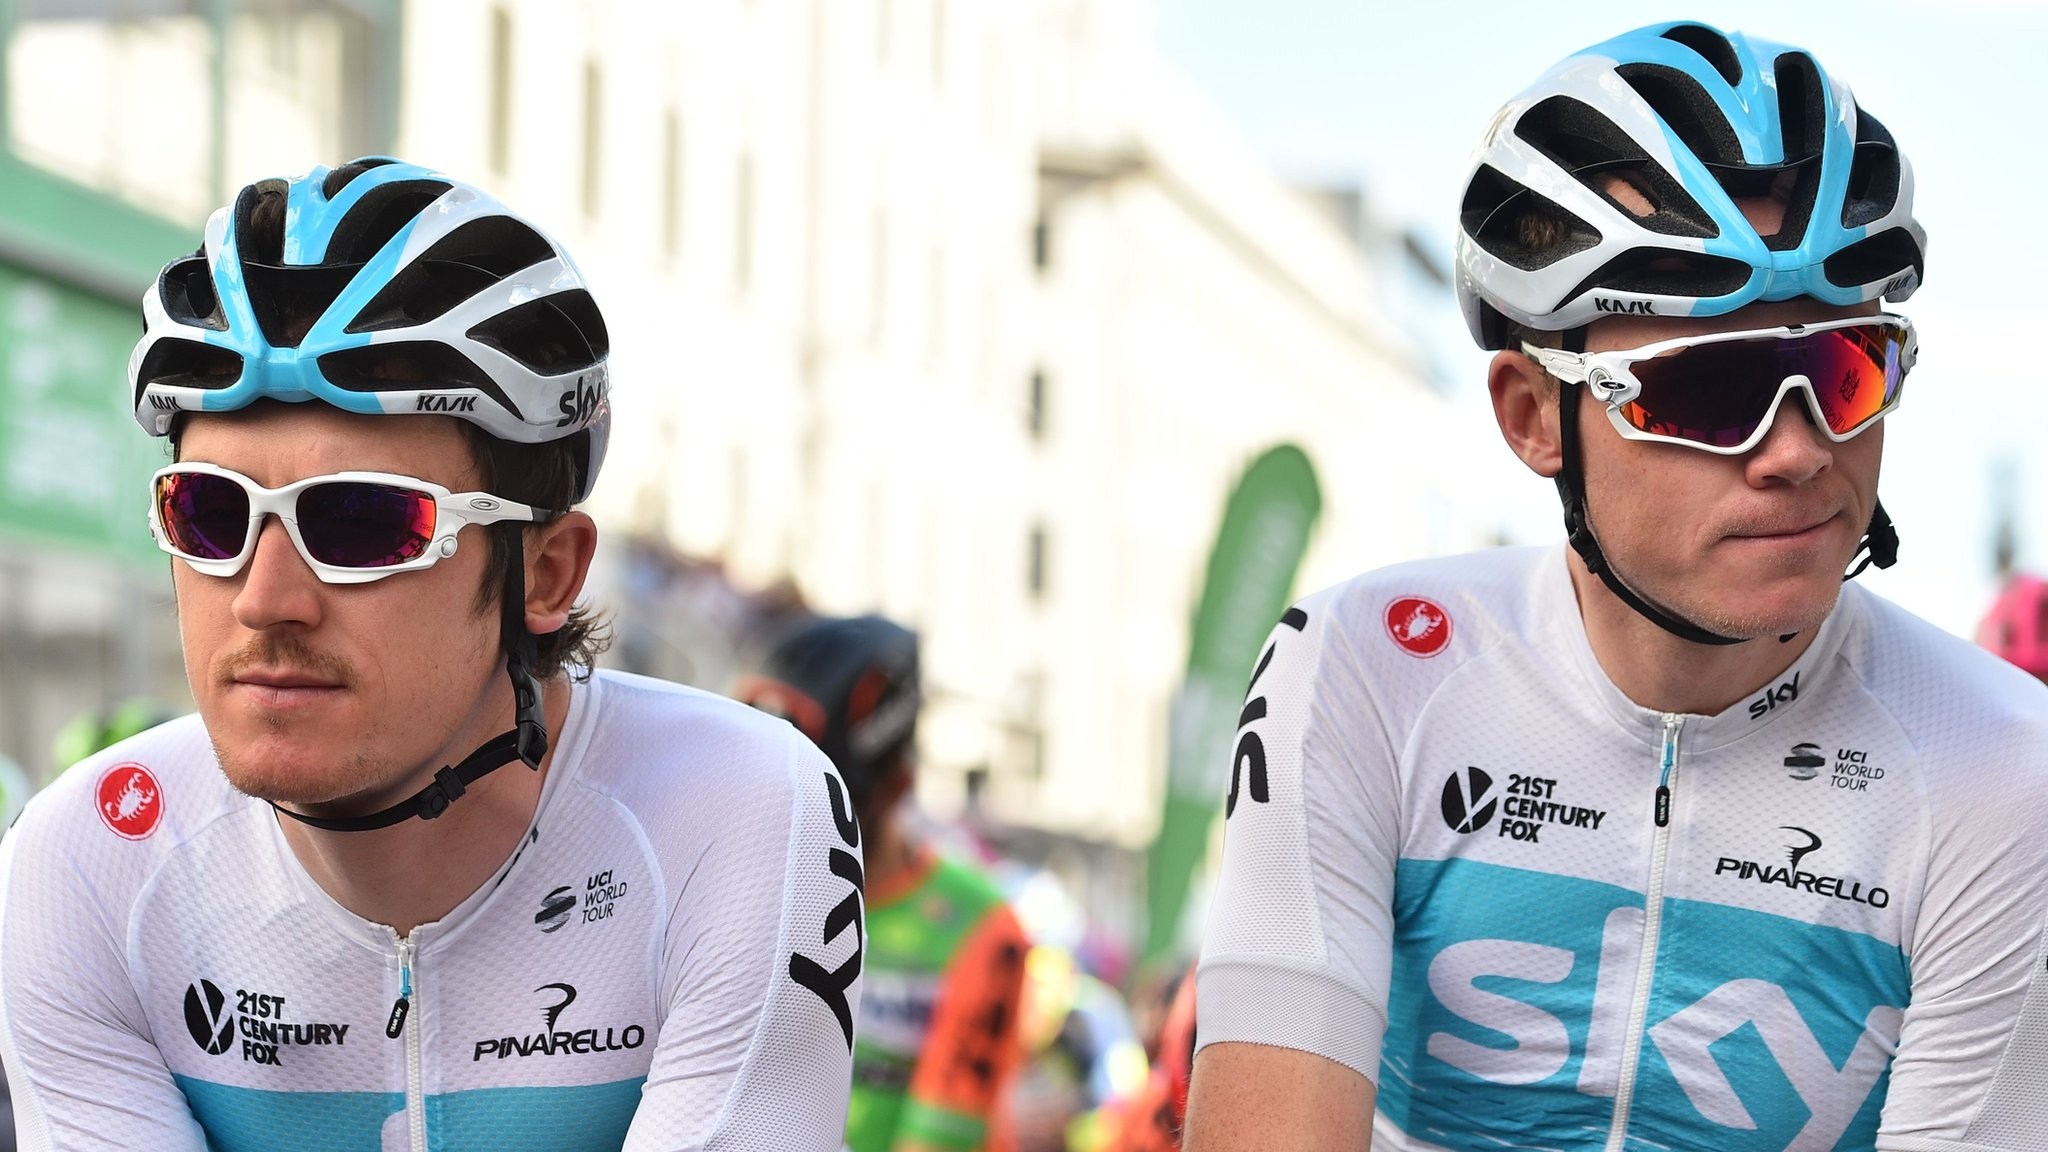 Geraint Thomas says 'let road decide' as Team Sky leader with Chris Froome